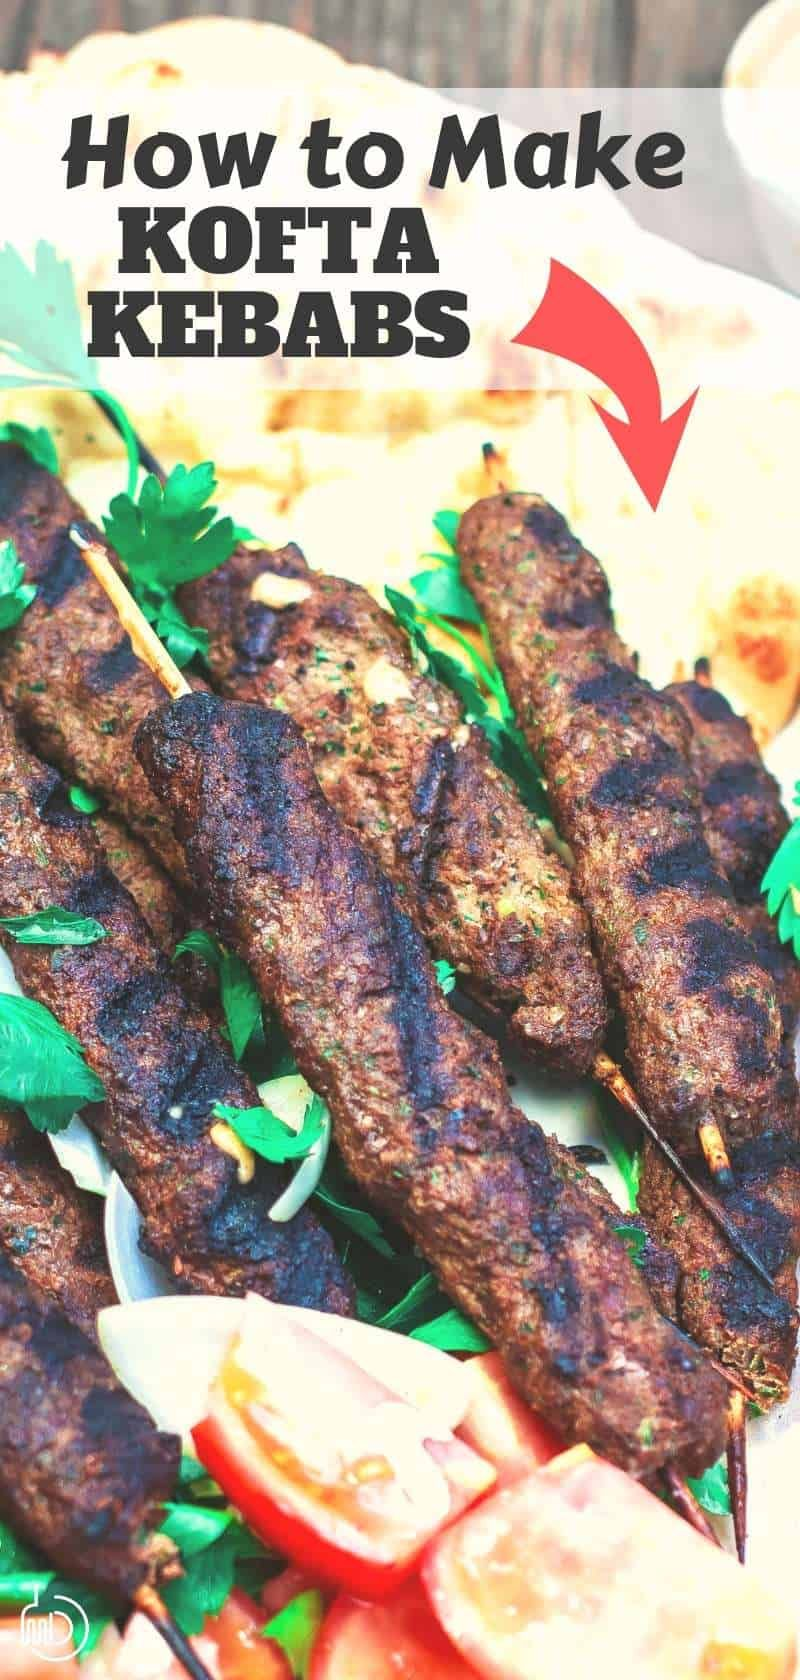 This Tutorial Is All You Need To Make The Best Authentic Kofta Kebabs You Ll Love These Tasty Kabobs With A Ground Meat Kebab Recipes Kofta Kebab Recipe Kofta